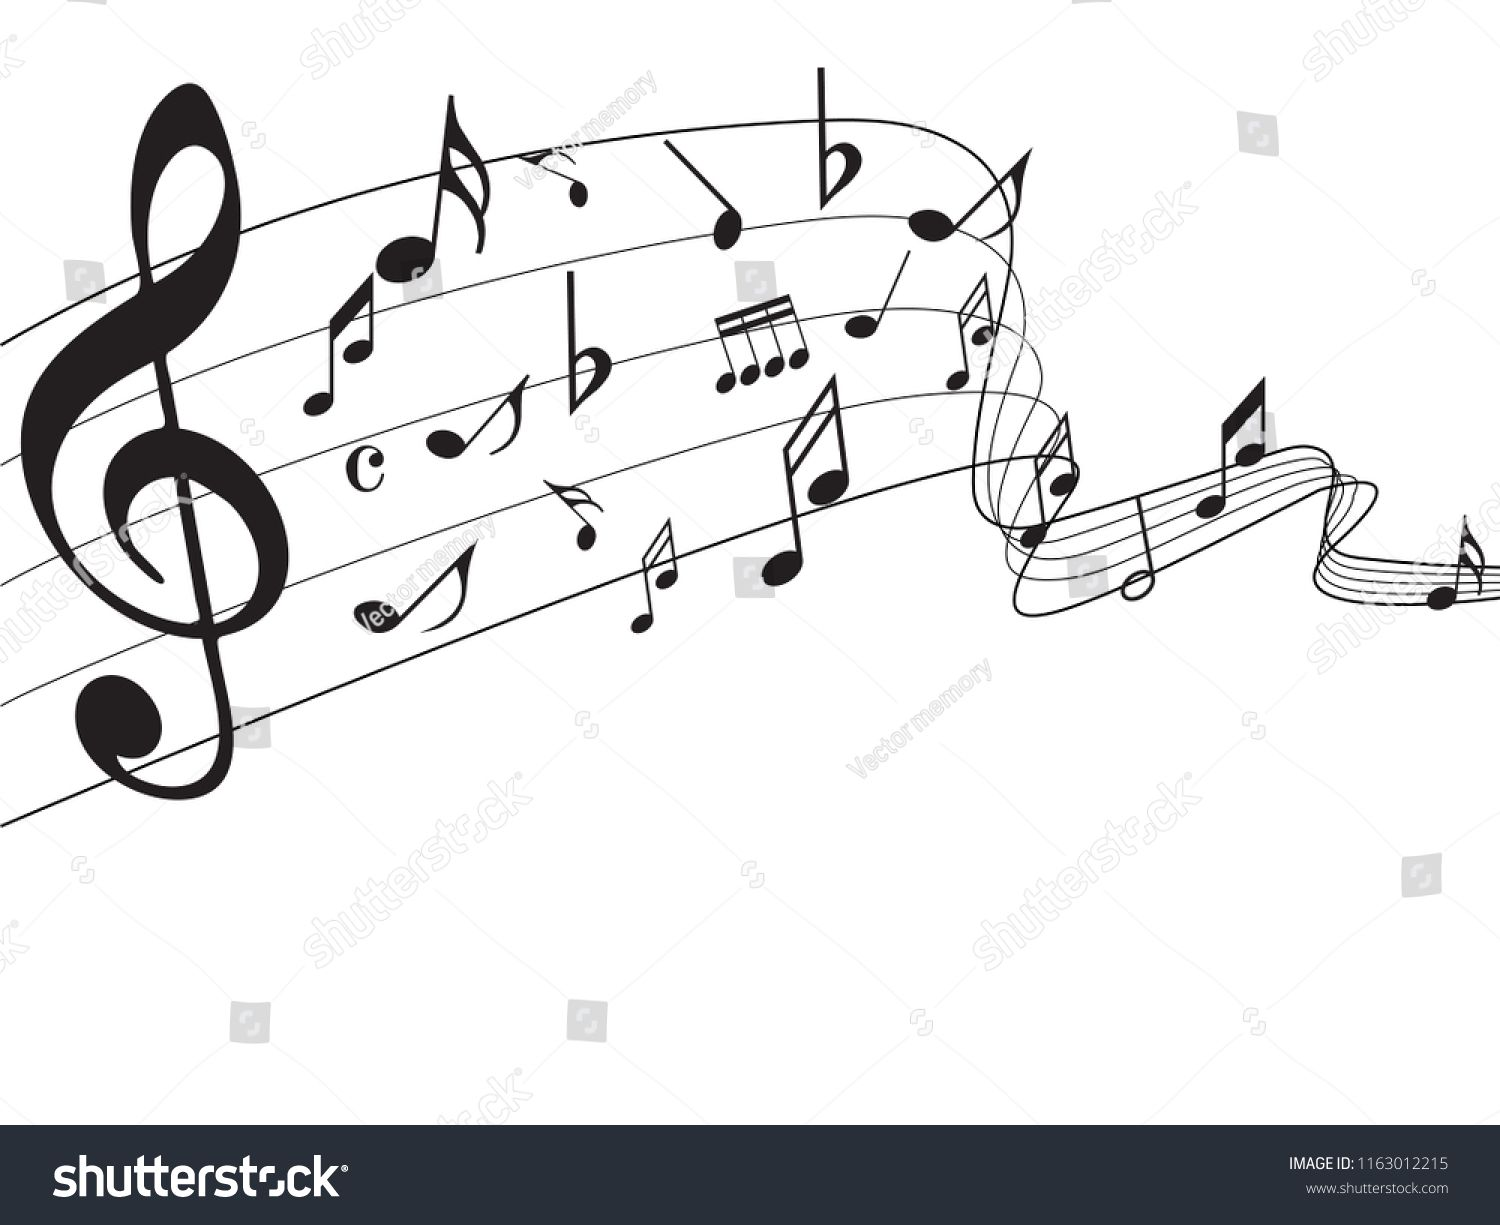 image transparent Drawing rainbows music note. Notes abstract on rainbow